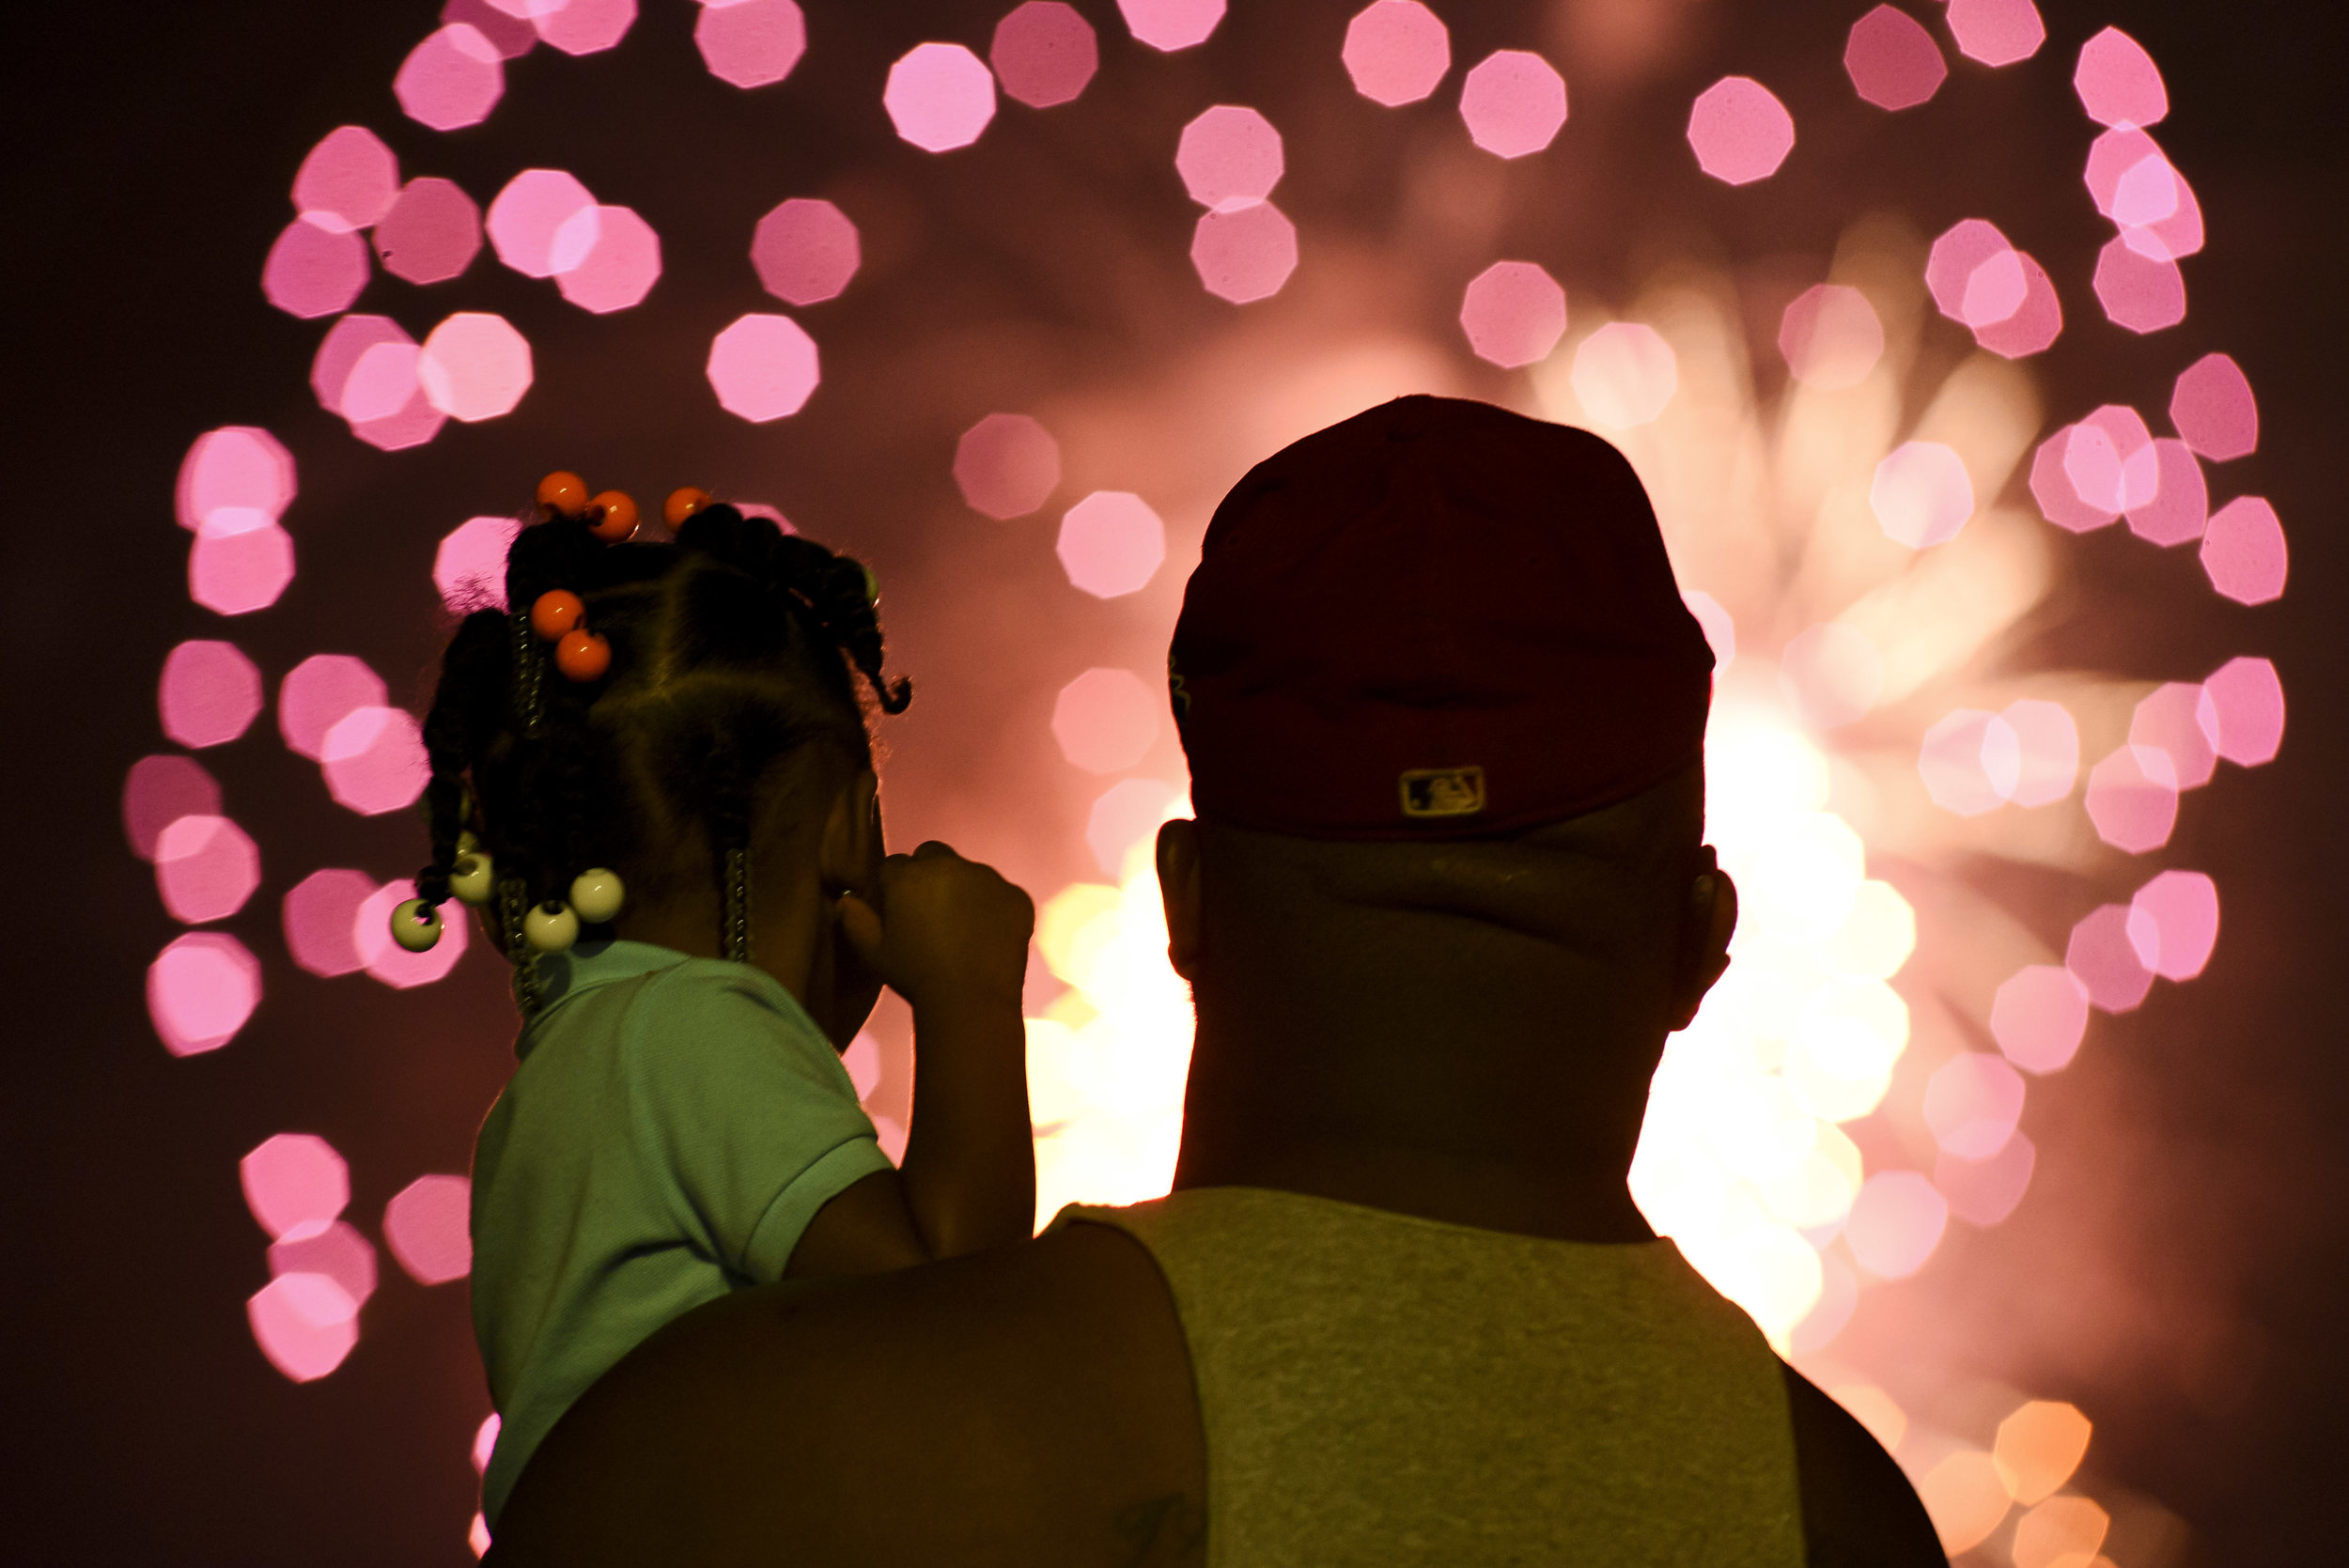 Cedric Johnson holds his goddaughter Miracle Crawley, 2, as fireworks light up the sky during the Fourth of July Fireworks Show at the Vicksburg Riverfront in Vicksburg, Miss., Thursday, July, 4, 2019 (Courtland Wells/The Vicksburg Post via AP)